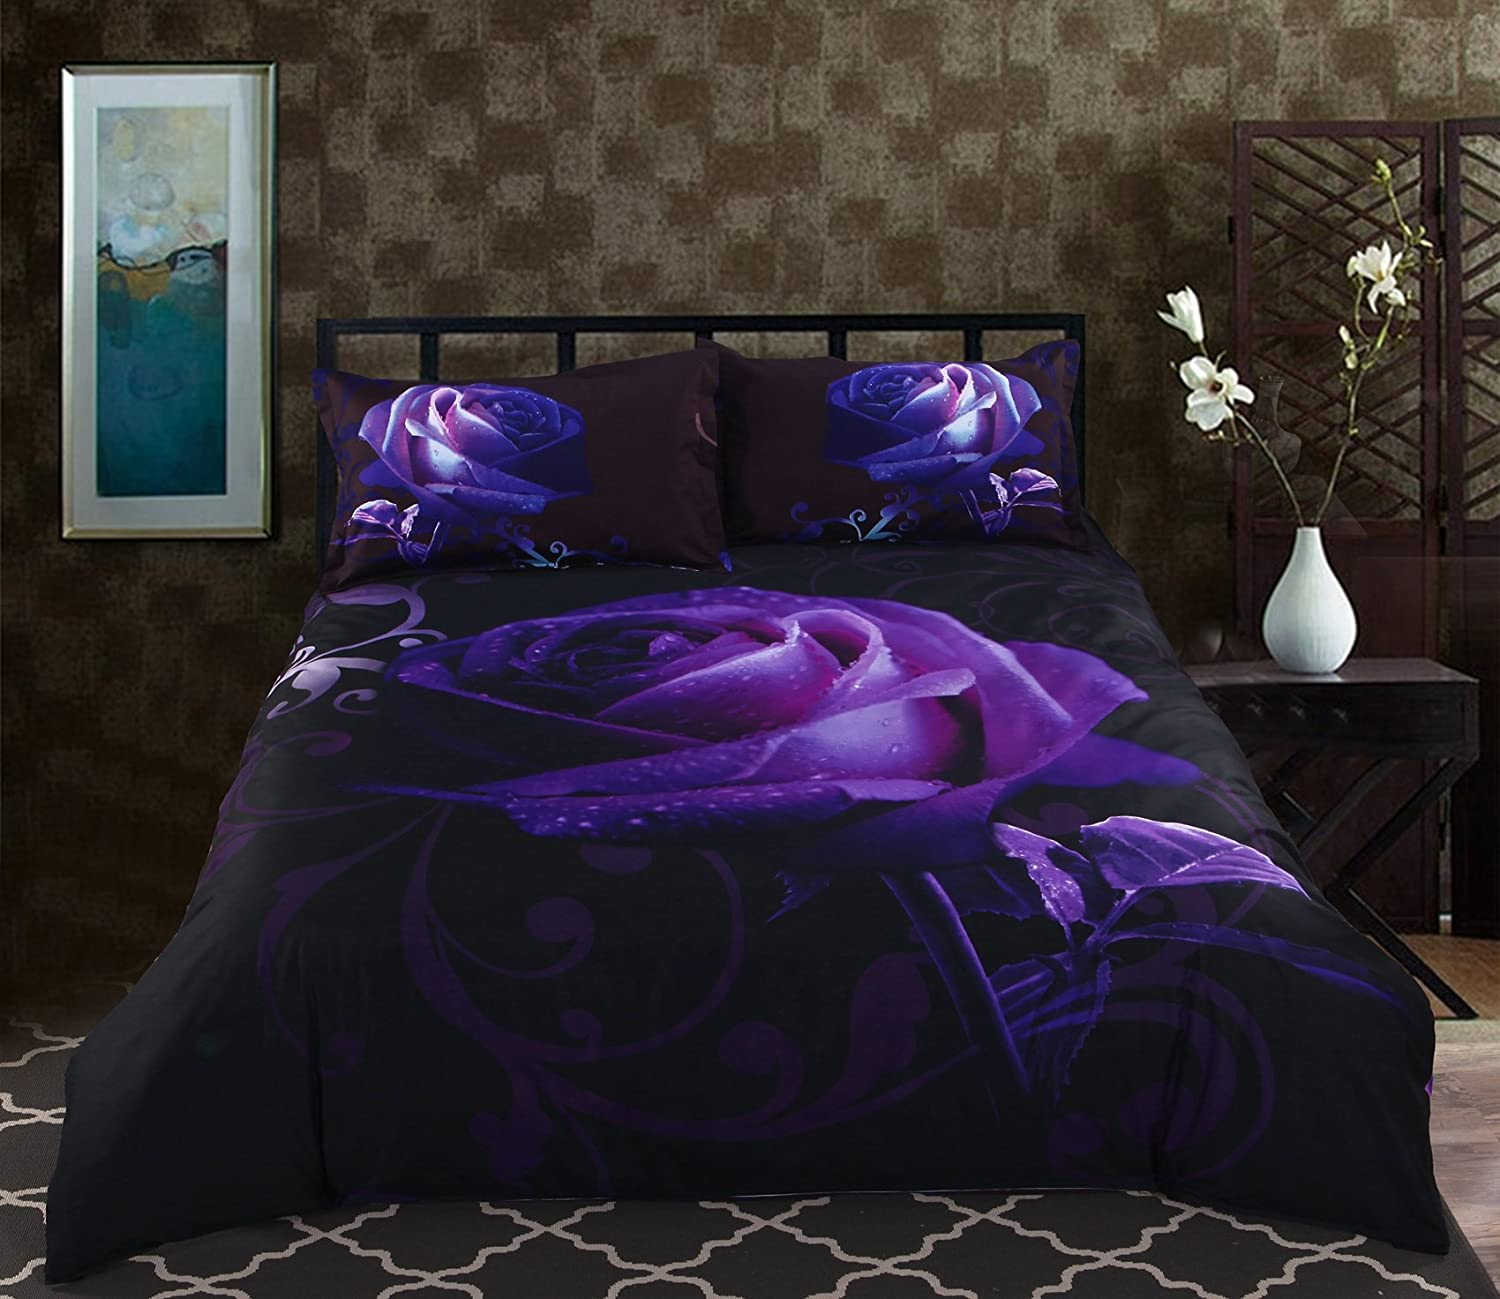 bed and purple yellow bedding